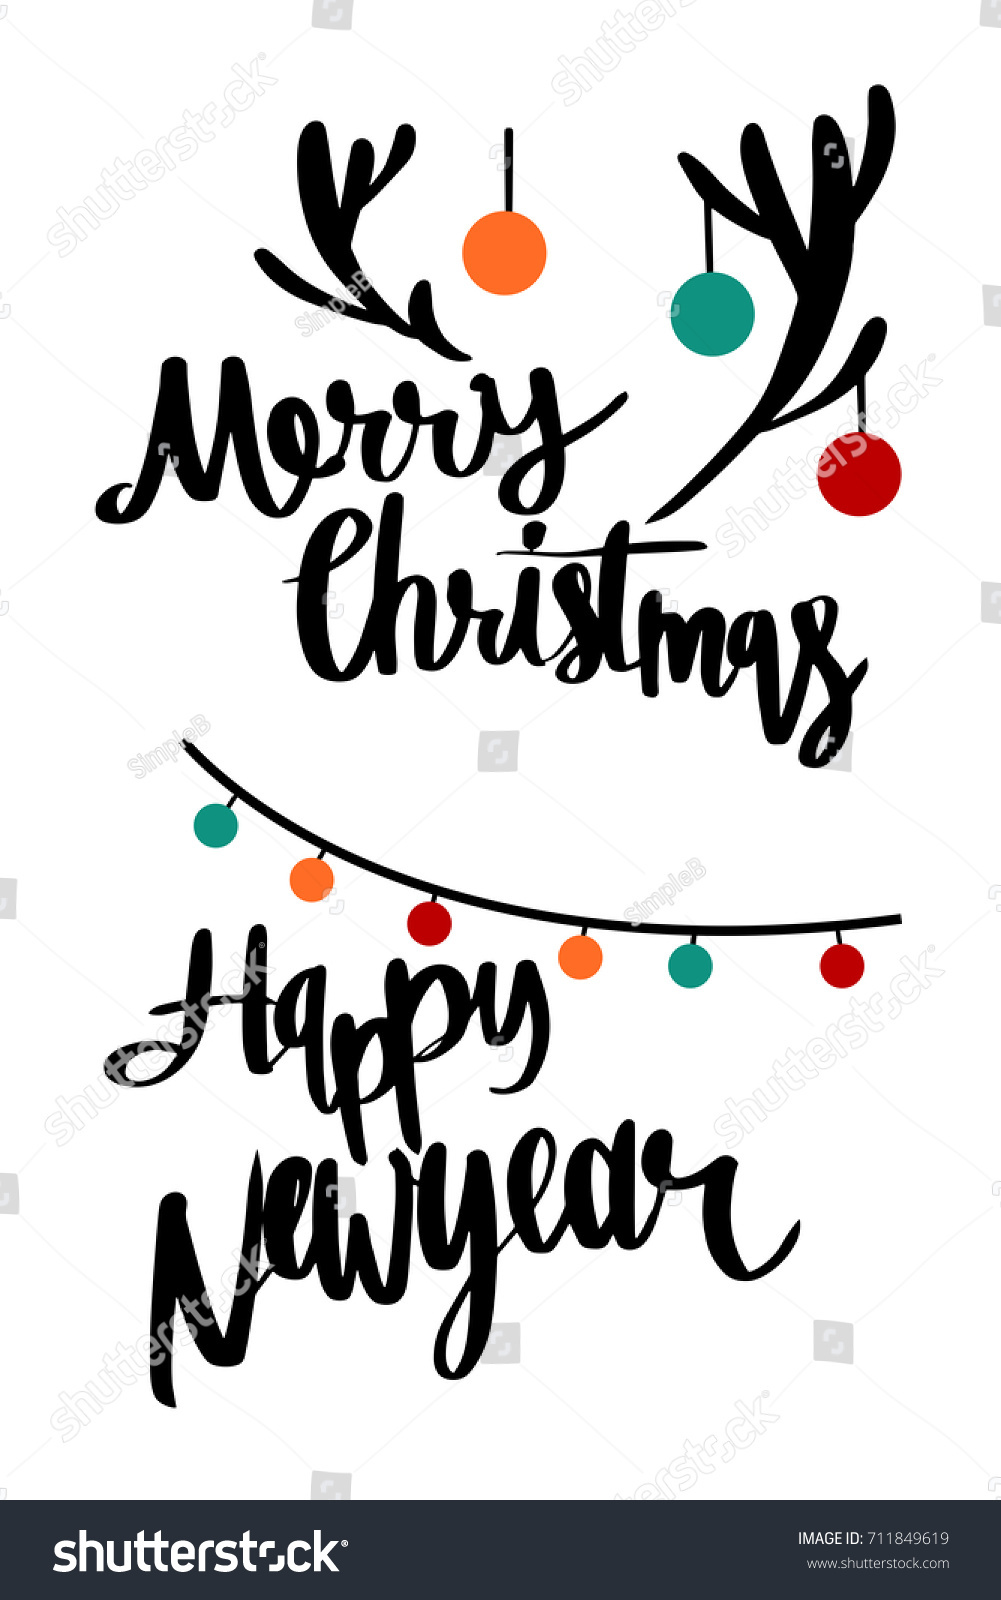 merry christmas and happy newyear minimal design style illustration vector greeting and invitation card design